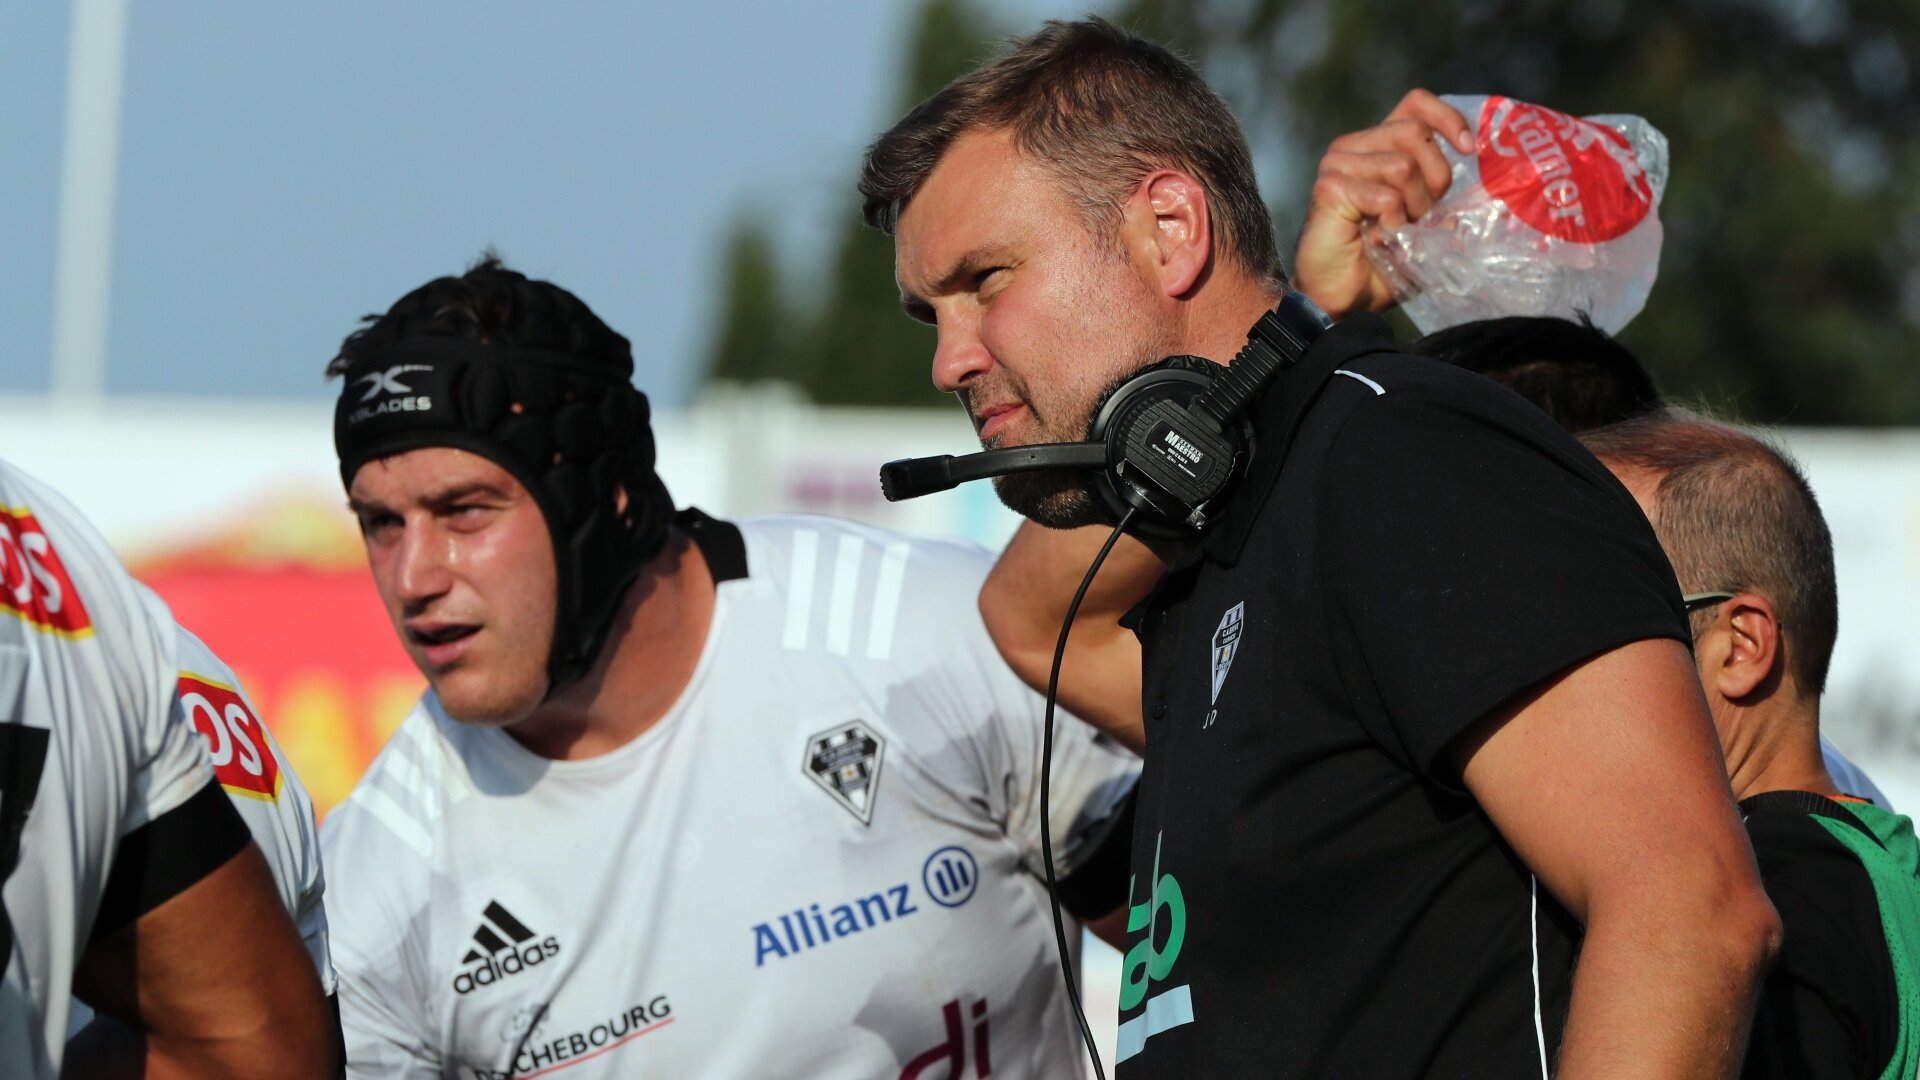 Brive 2020/21 Top 14 preview